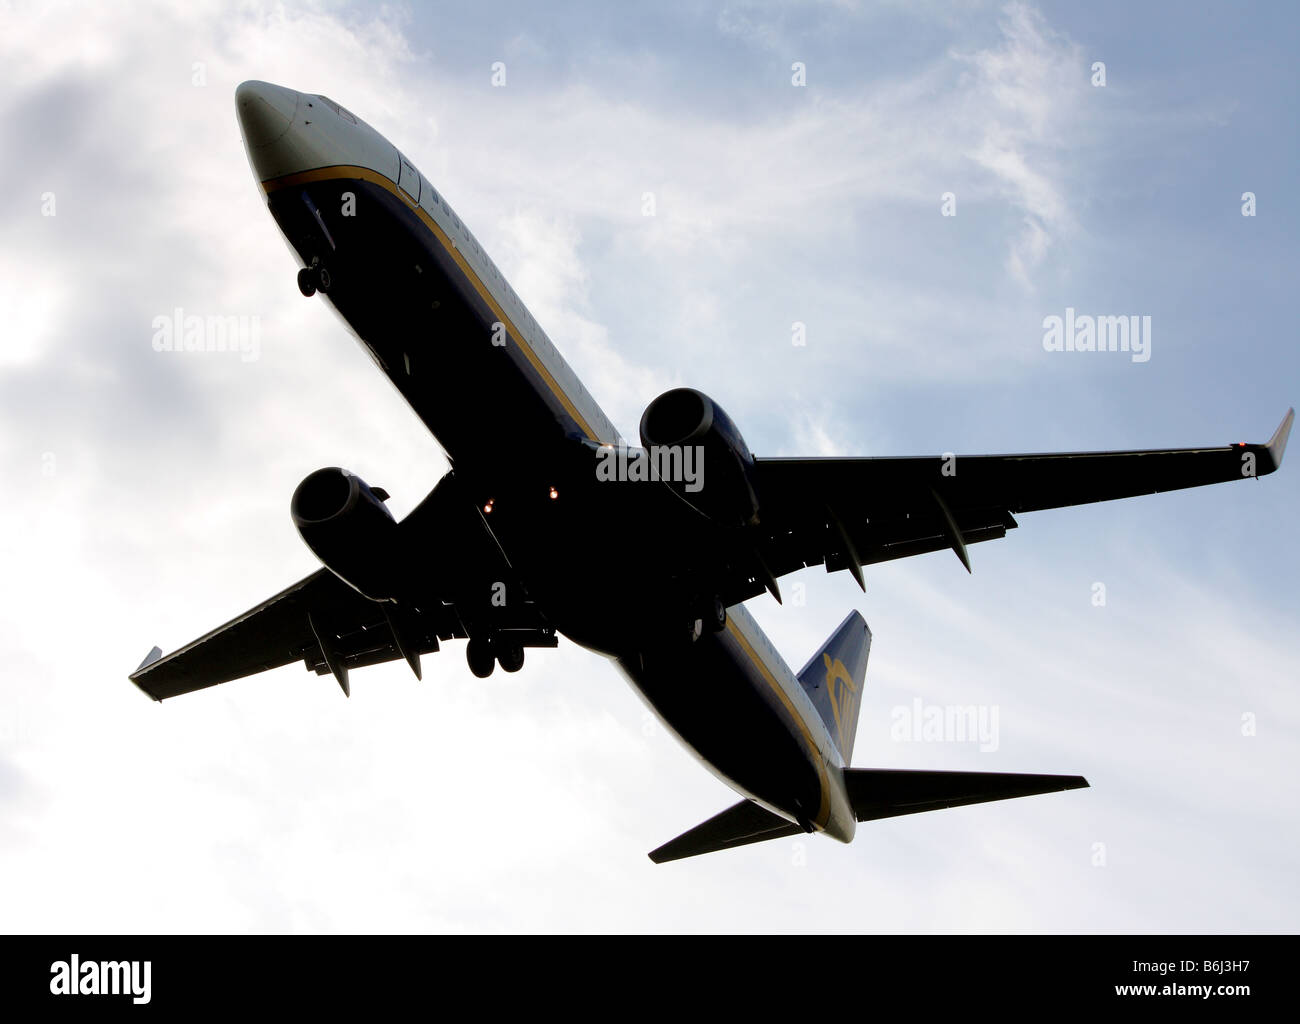 A close up of a ryanair passenger airplane flying overhead and coming in to land Stock Photo